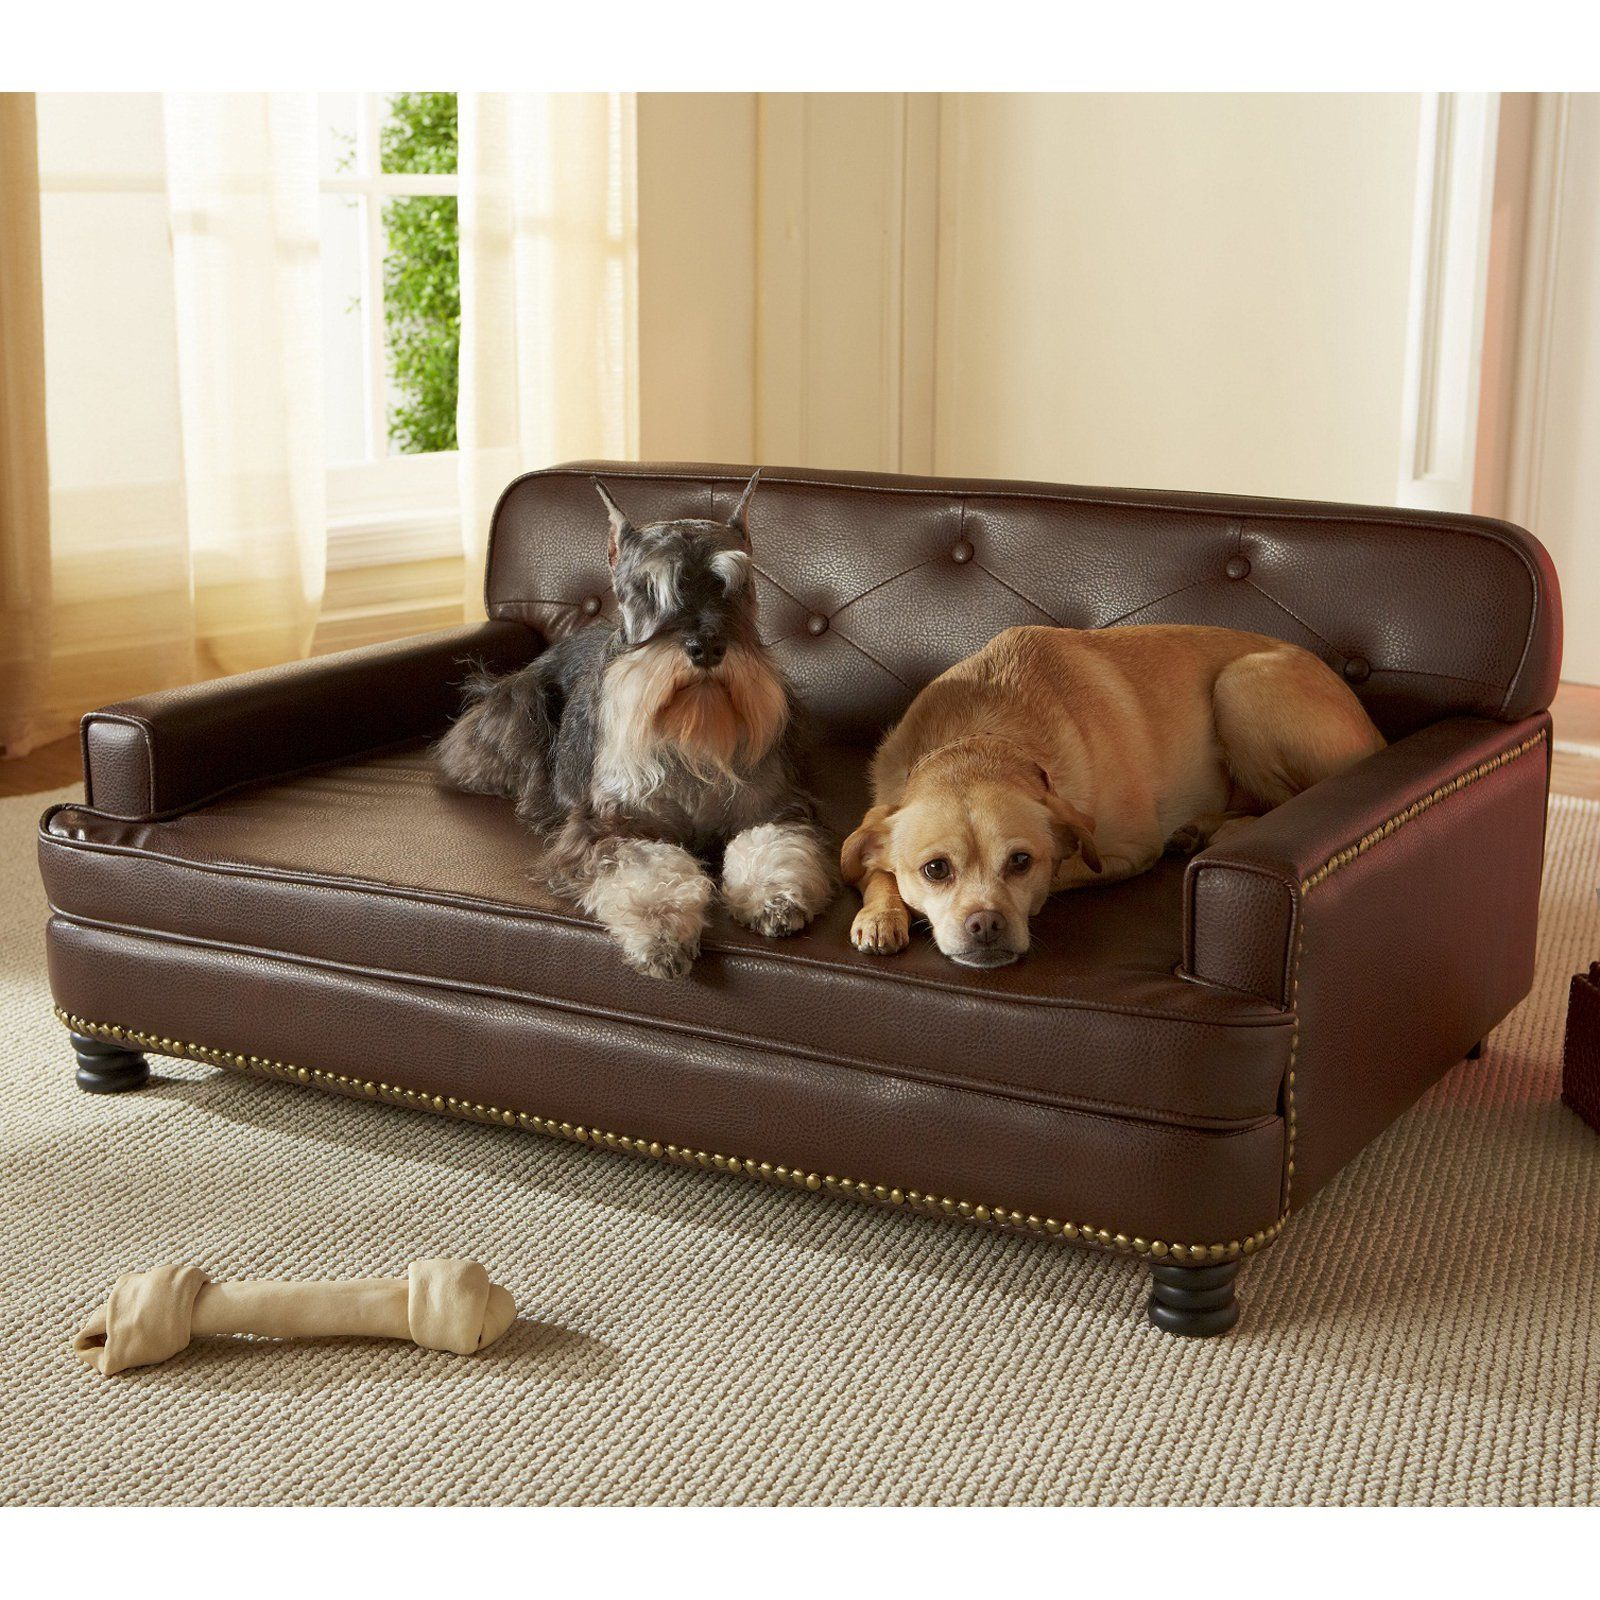 top luxury sofa beds gallery-Fresh Luxury sofa Beds Construction